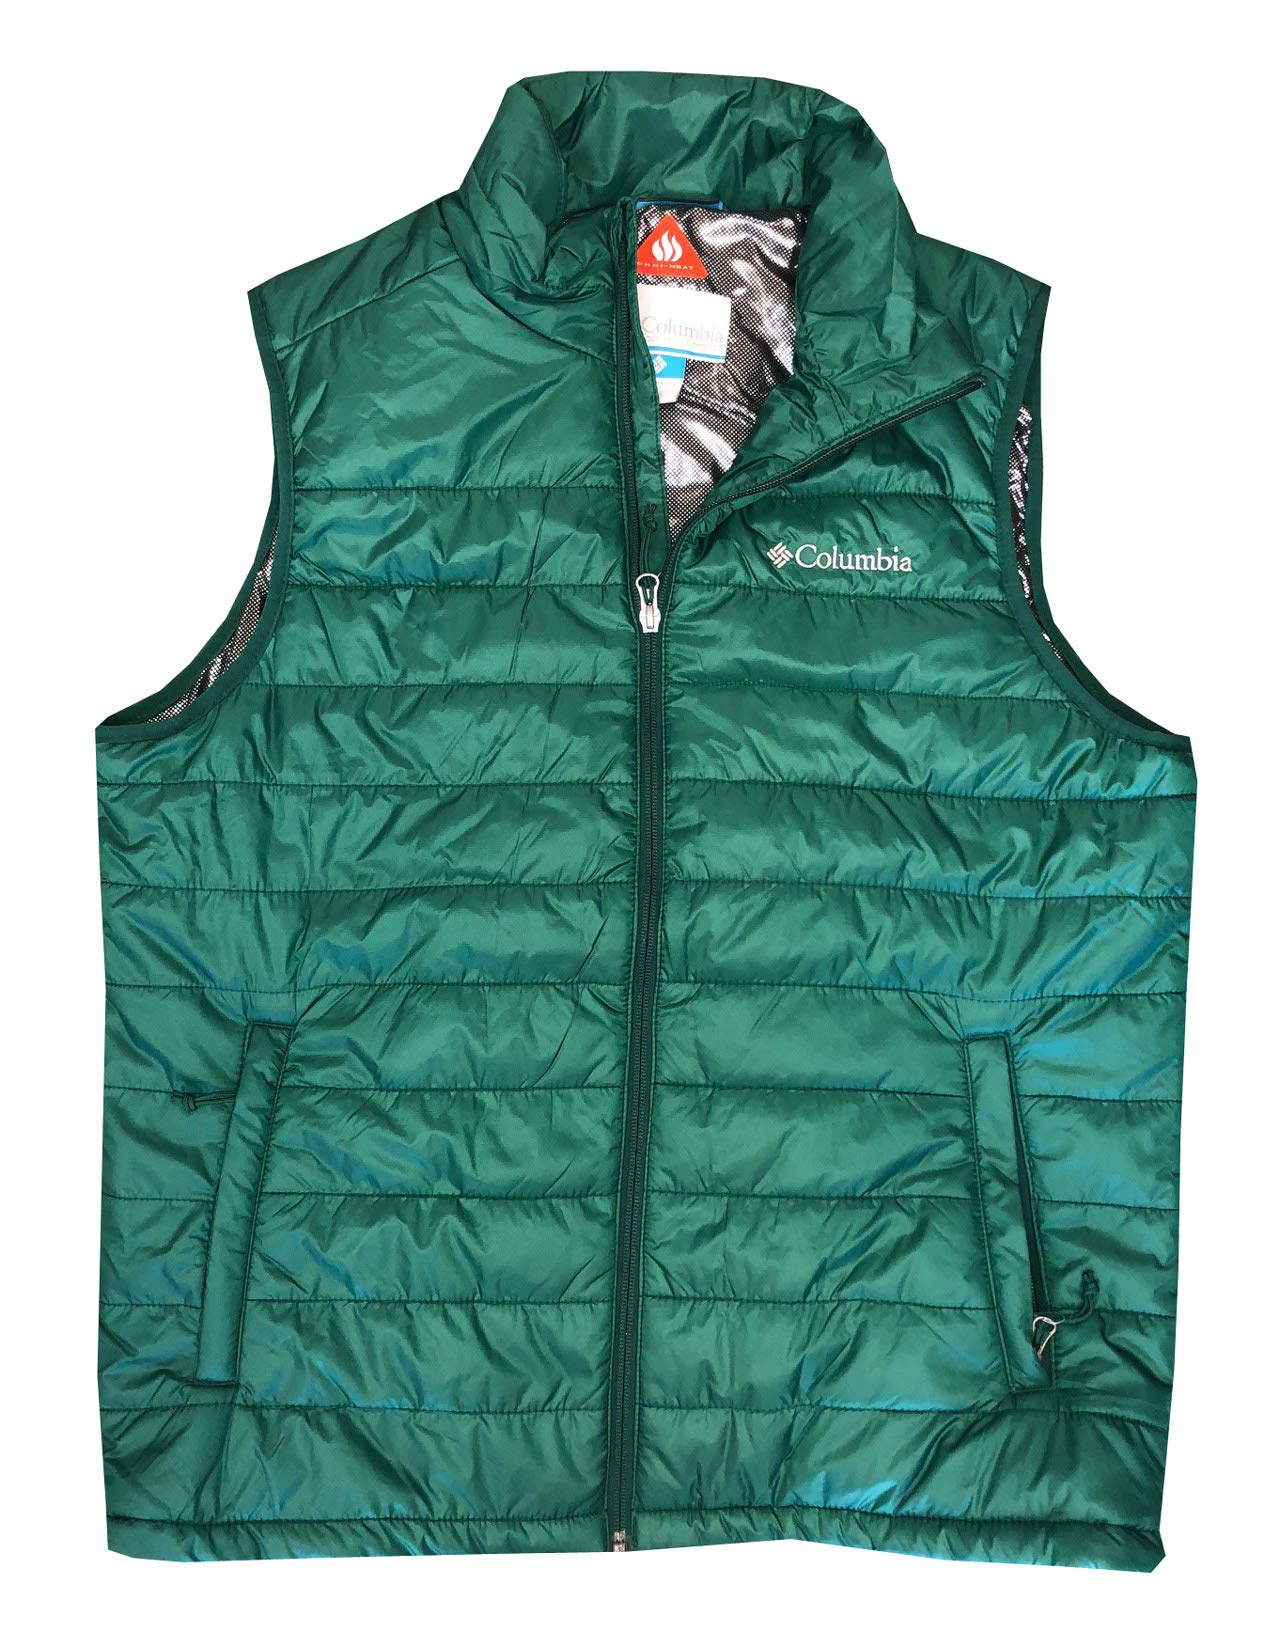 Columbia Men's Crested Butte II Omni-Heat Puffer Vest Jacket (L, Forest Green) by Columbia